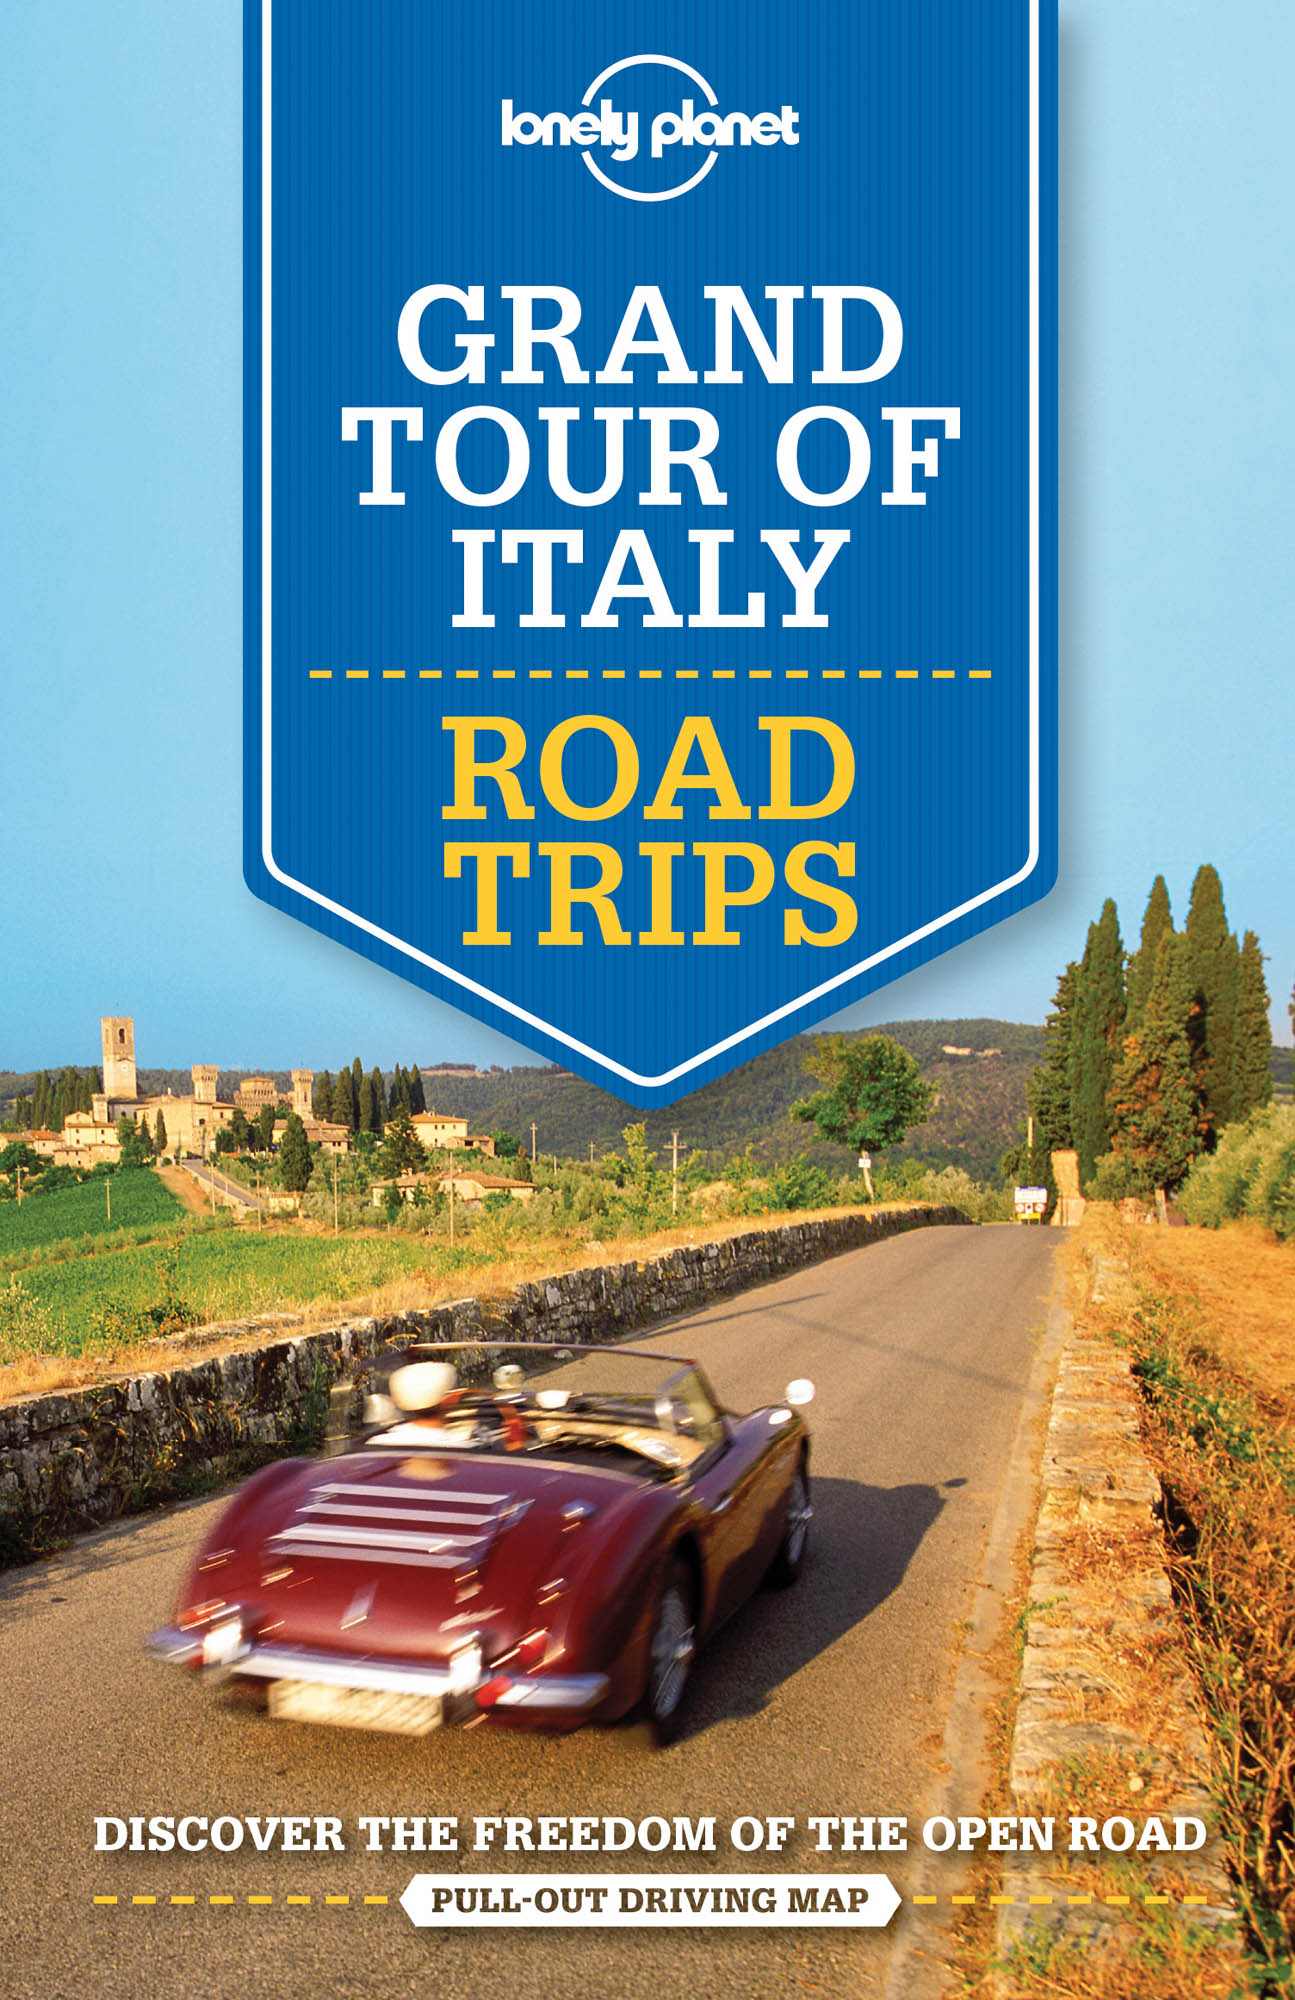 Grand Tour of Italy Road Trips průvodce 1st 2016 Lonely Planet